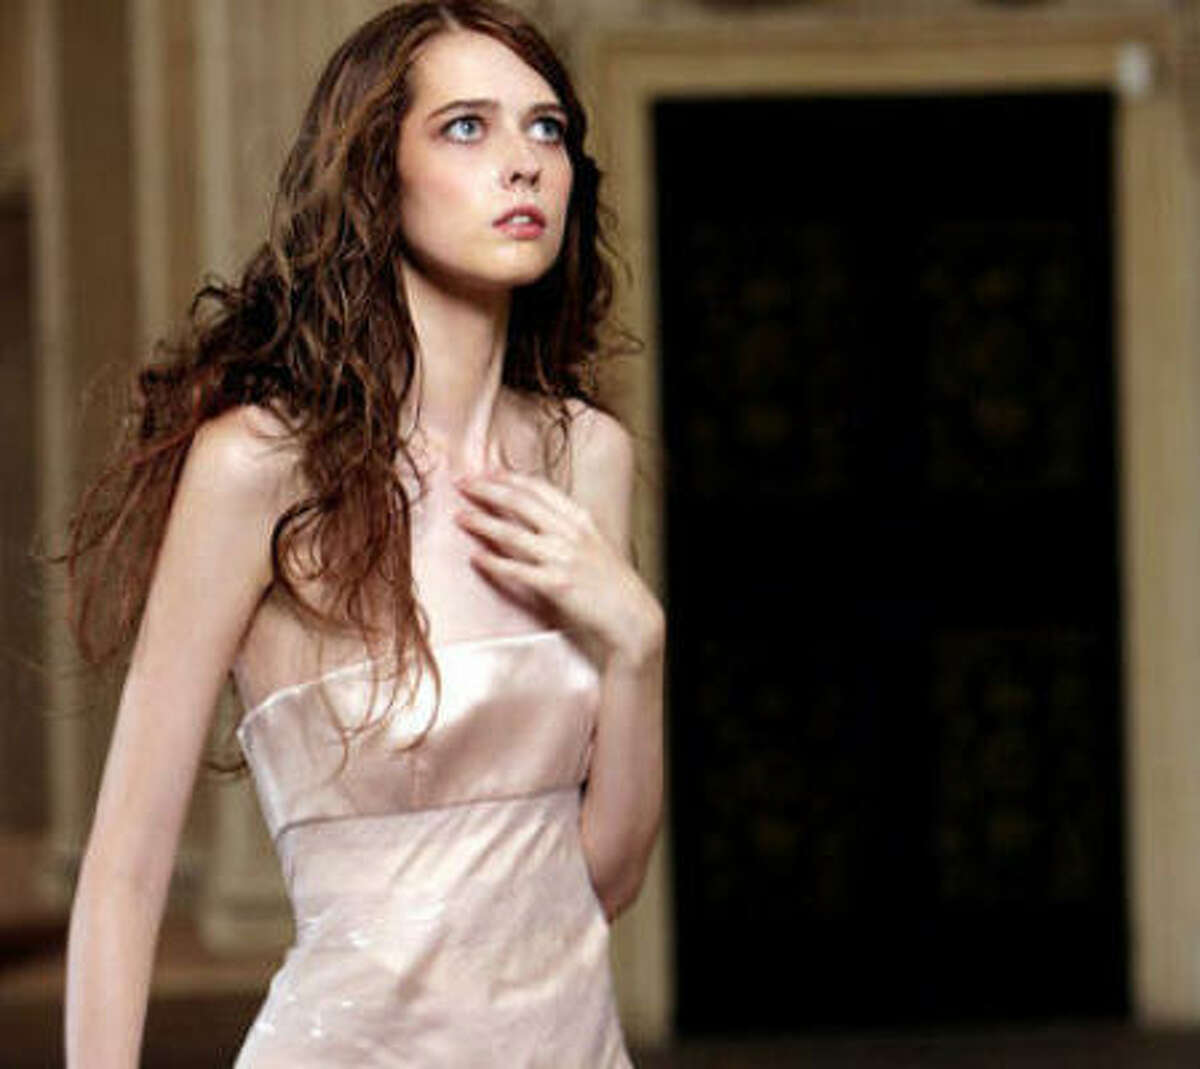 America's Next Top Model Cycle 15 winner- Ann Ward's waist is so small, when measured at the beginning of the season, Miss J. Alexander could connect the the thumb and forefinger of both his hands around her torso.